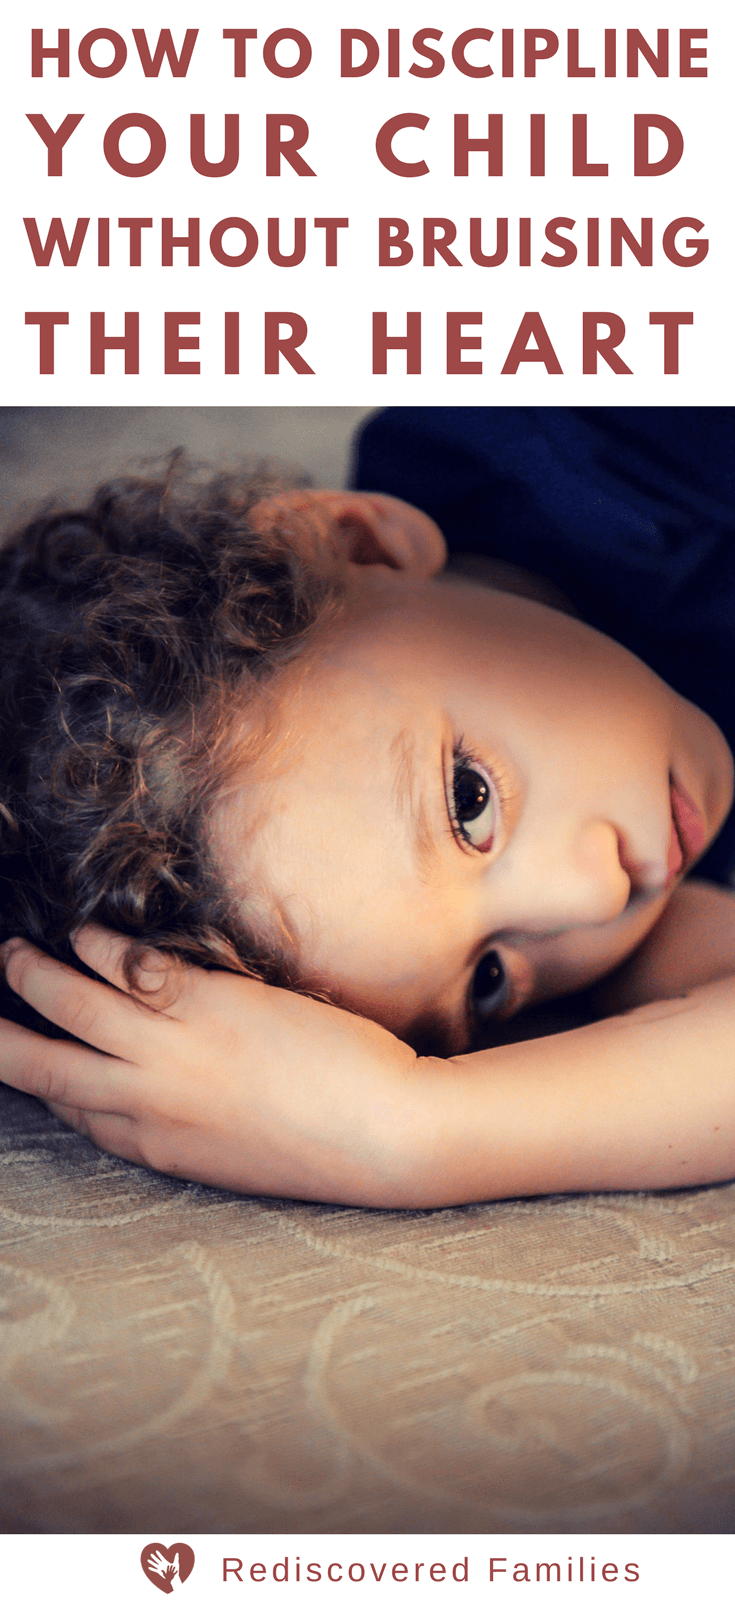 How to Discipline Your Child Without Bruising Their Heart